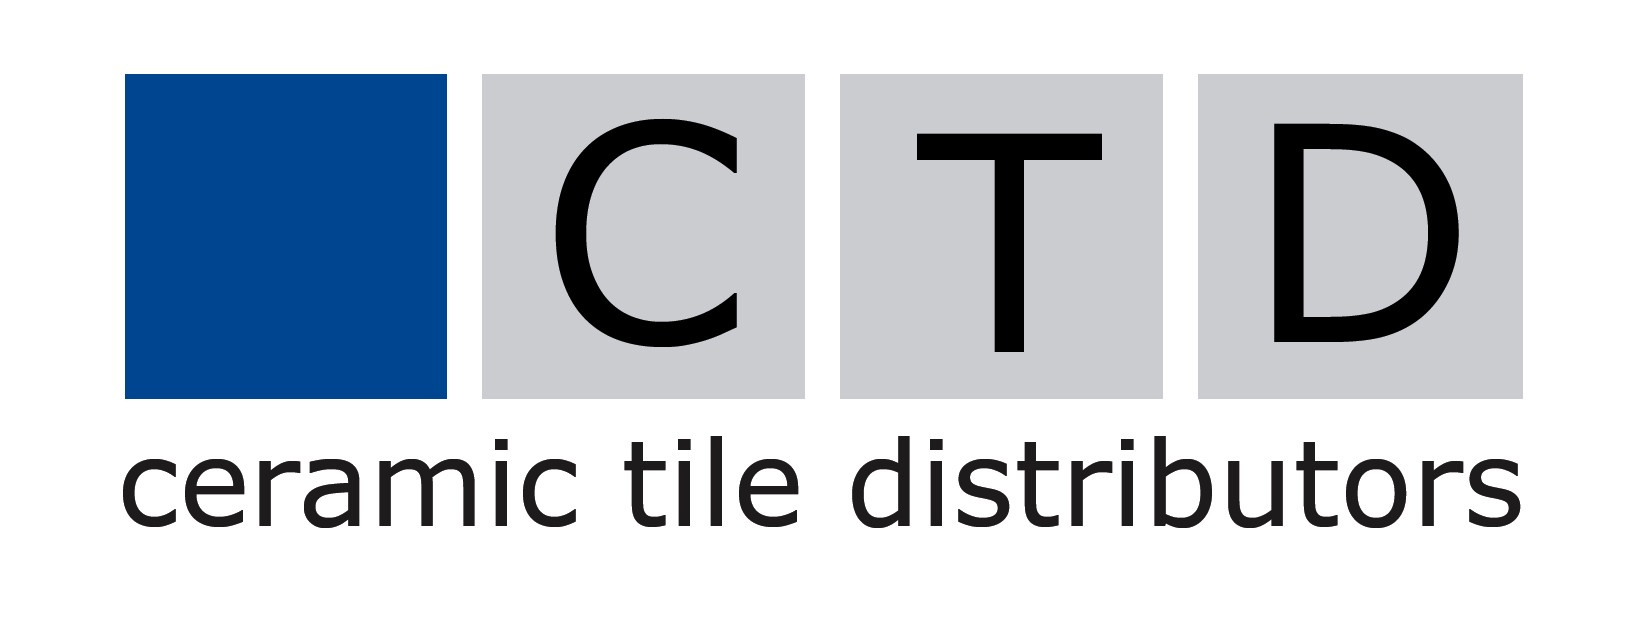 Ceramic tile distributors tile designs ceramic tile distributors designs dailygadgetfo Gallery